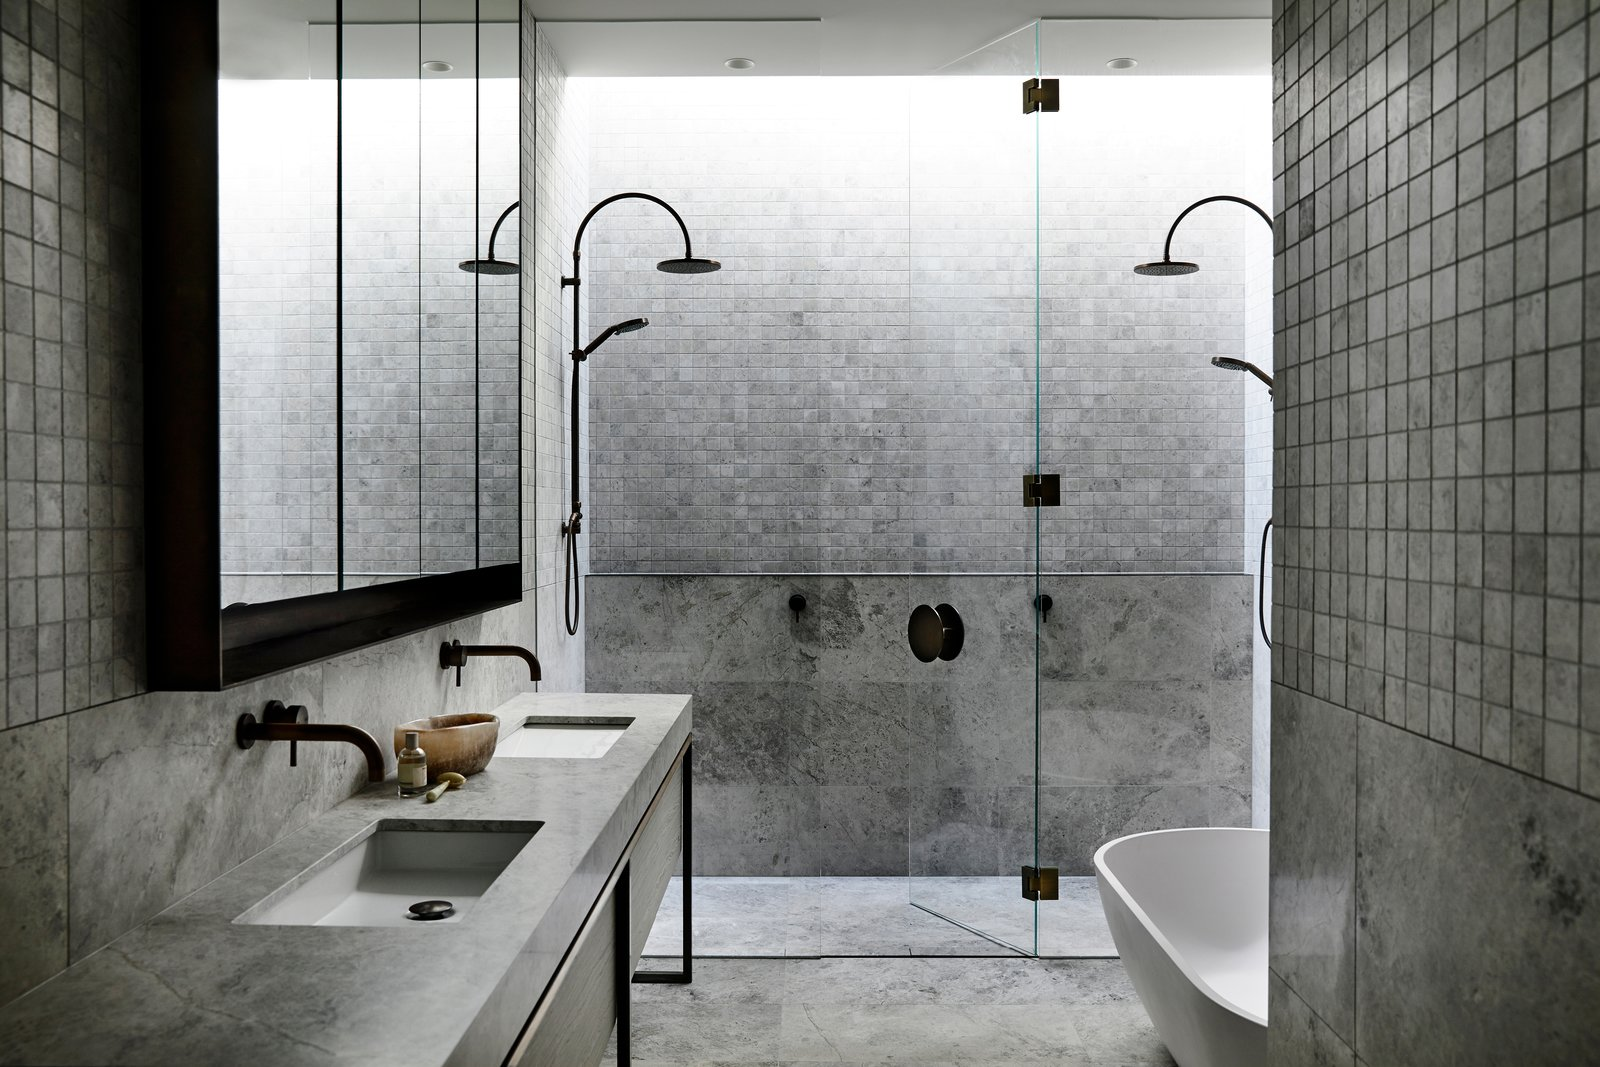 Bath Room, Enclosed Shower, Freestanding Tub, and Undermount Sink A bathroom with natural stone floor and walls.  Photos from A Strong Builder Bond Results in a Sophisticated Australian Home